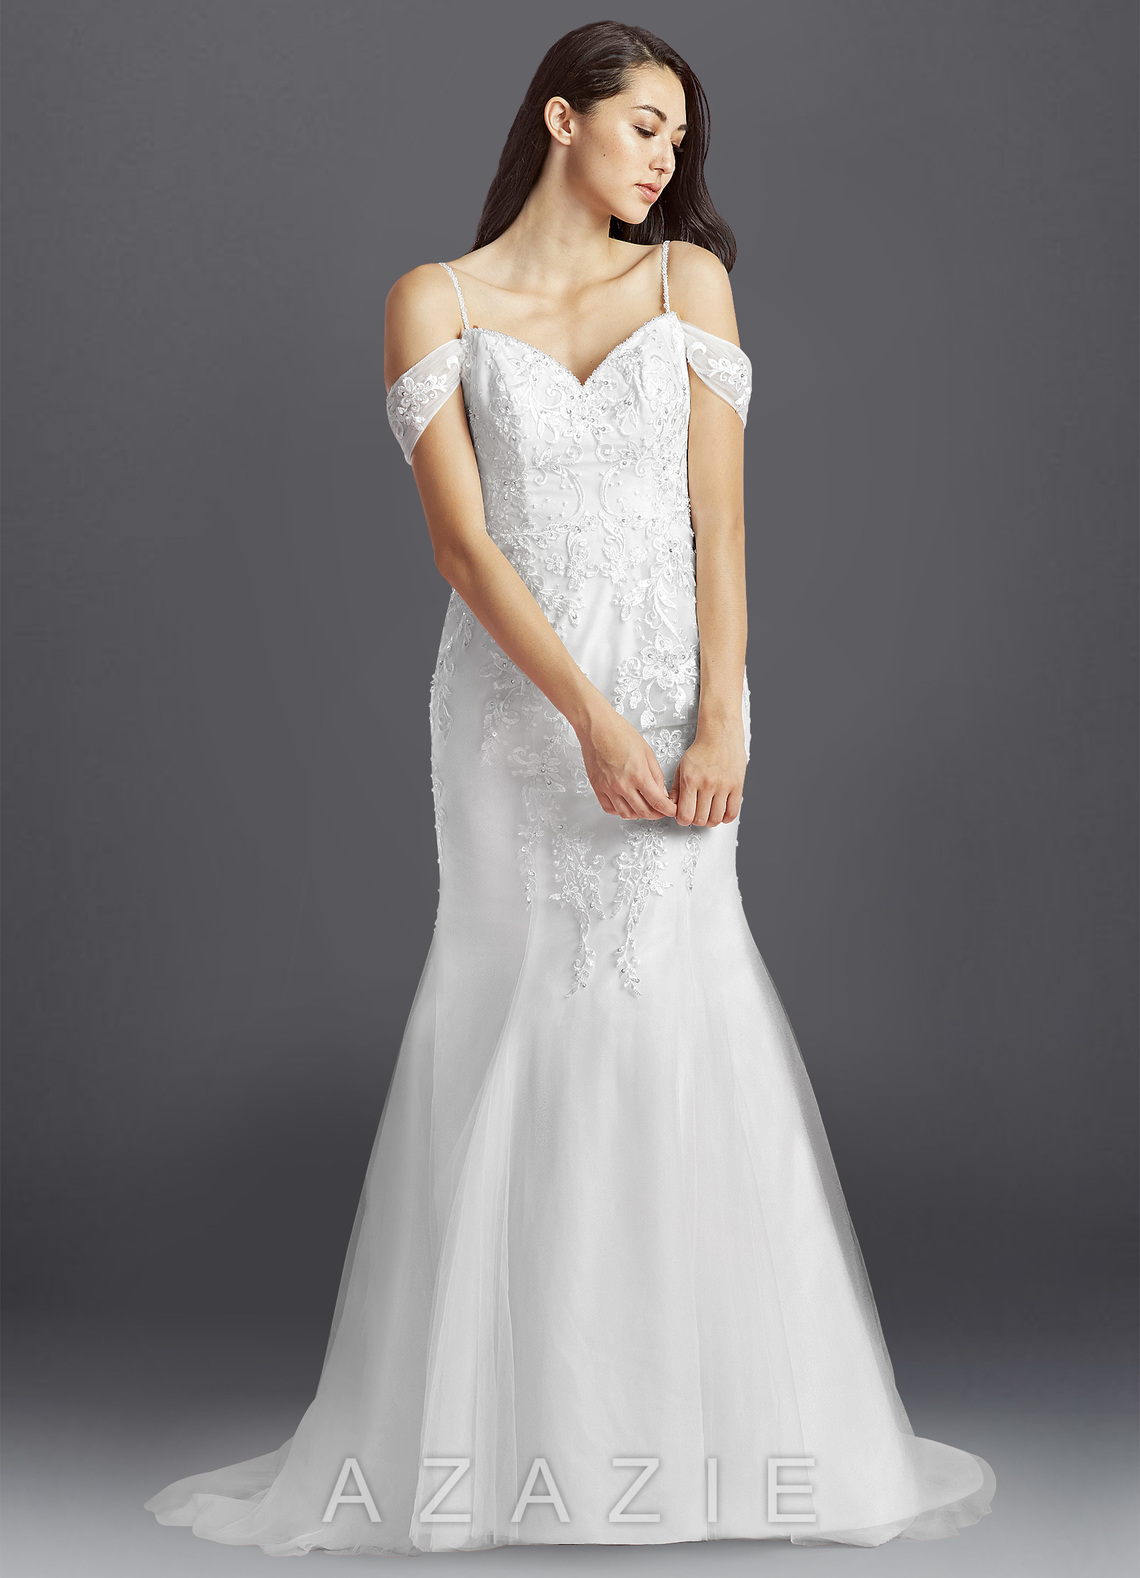 76c308e1778 Azazie Anya BG Wedding Dress